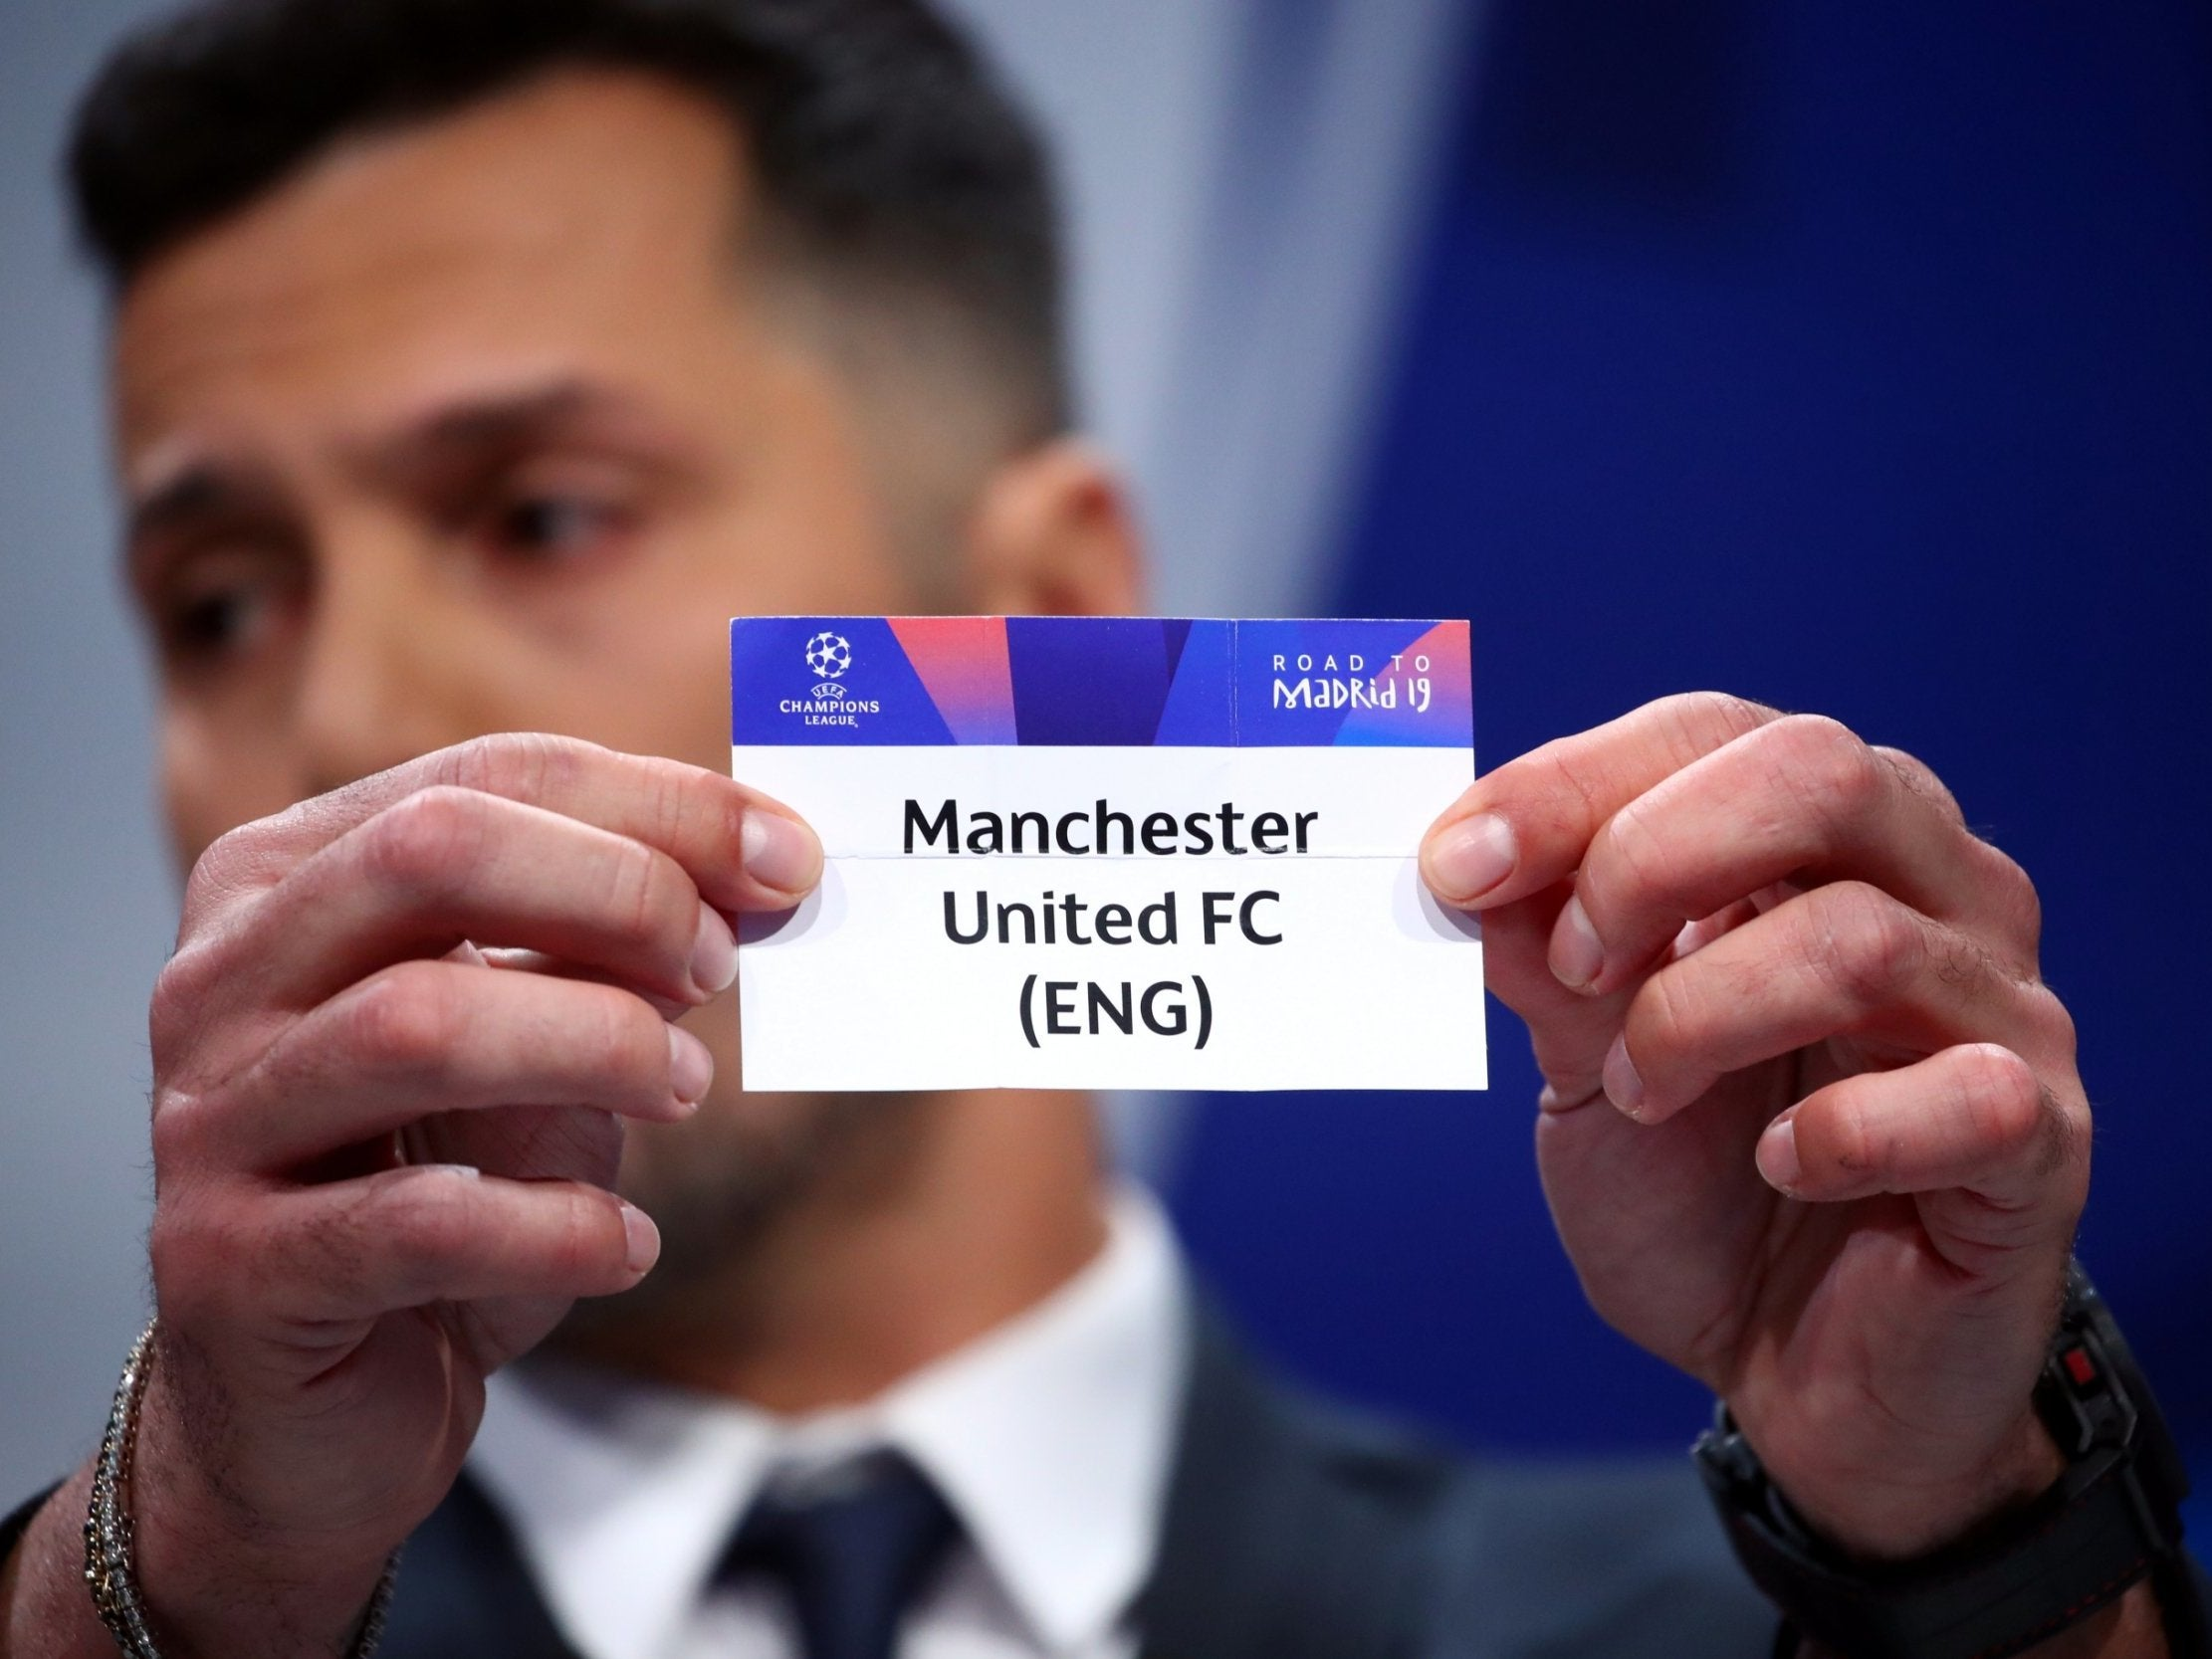 Champions League Draw Live Online Liverpool Manchester United Man